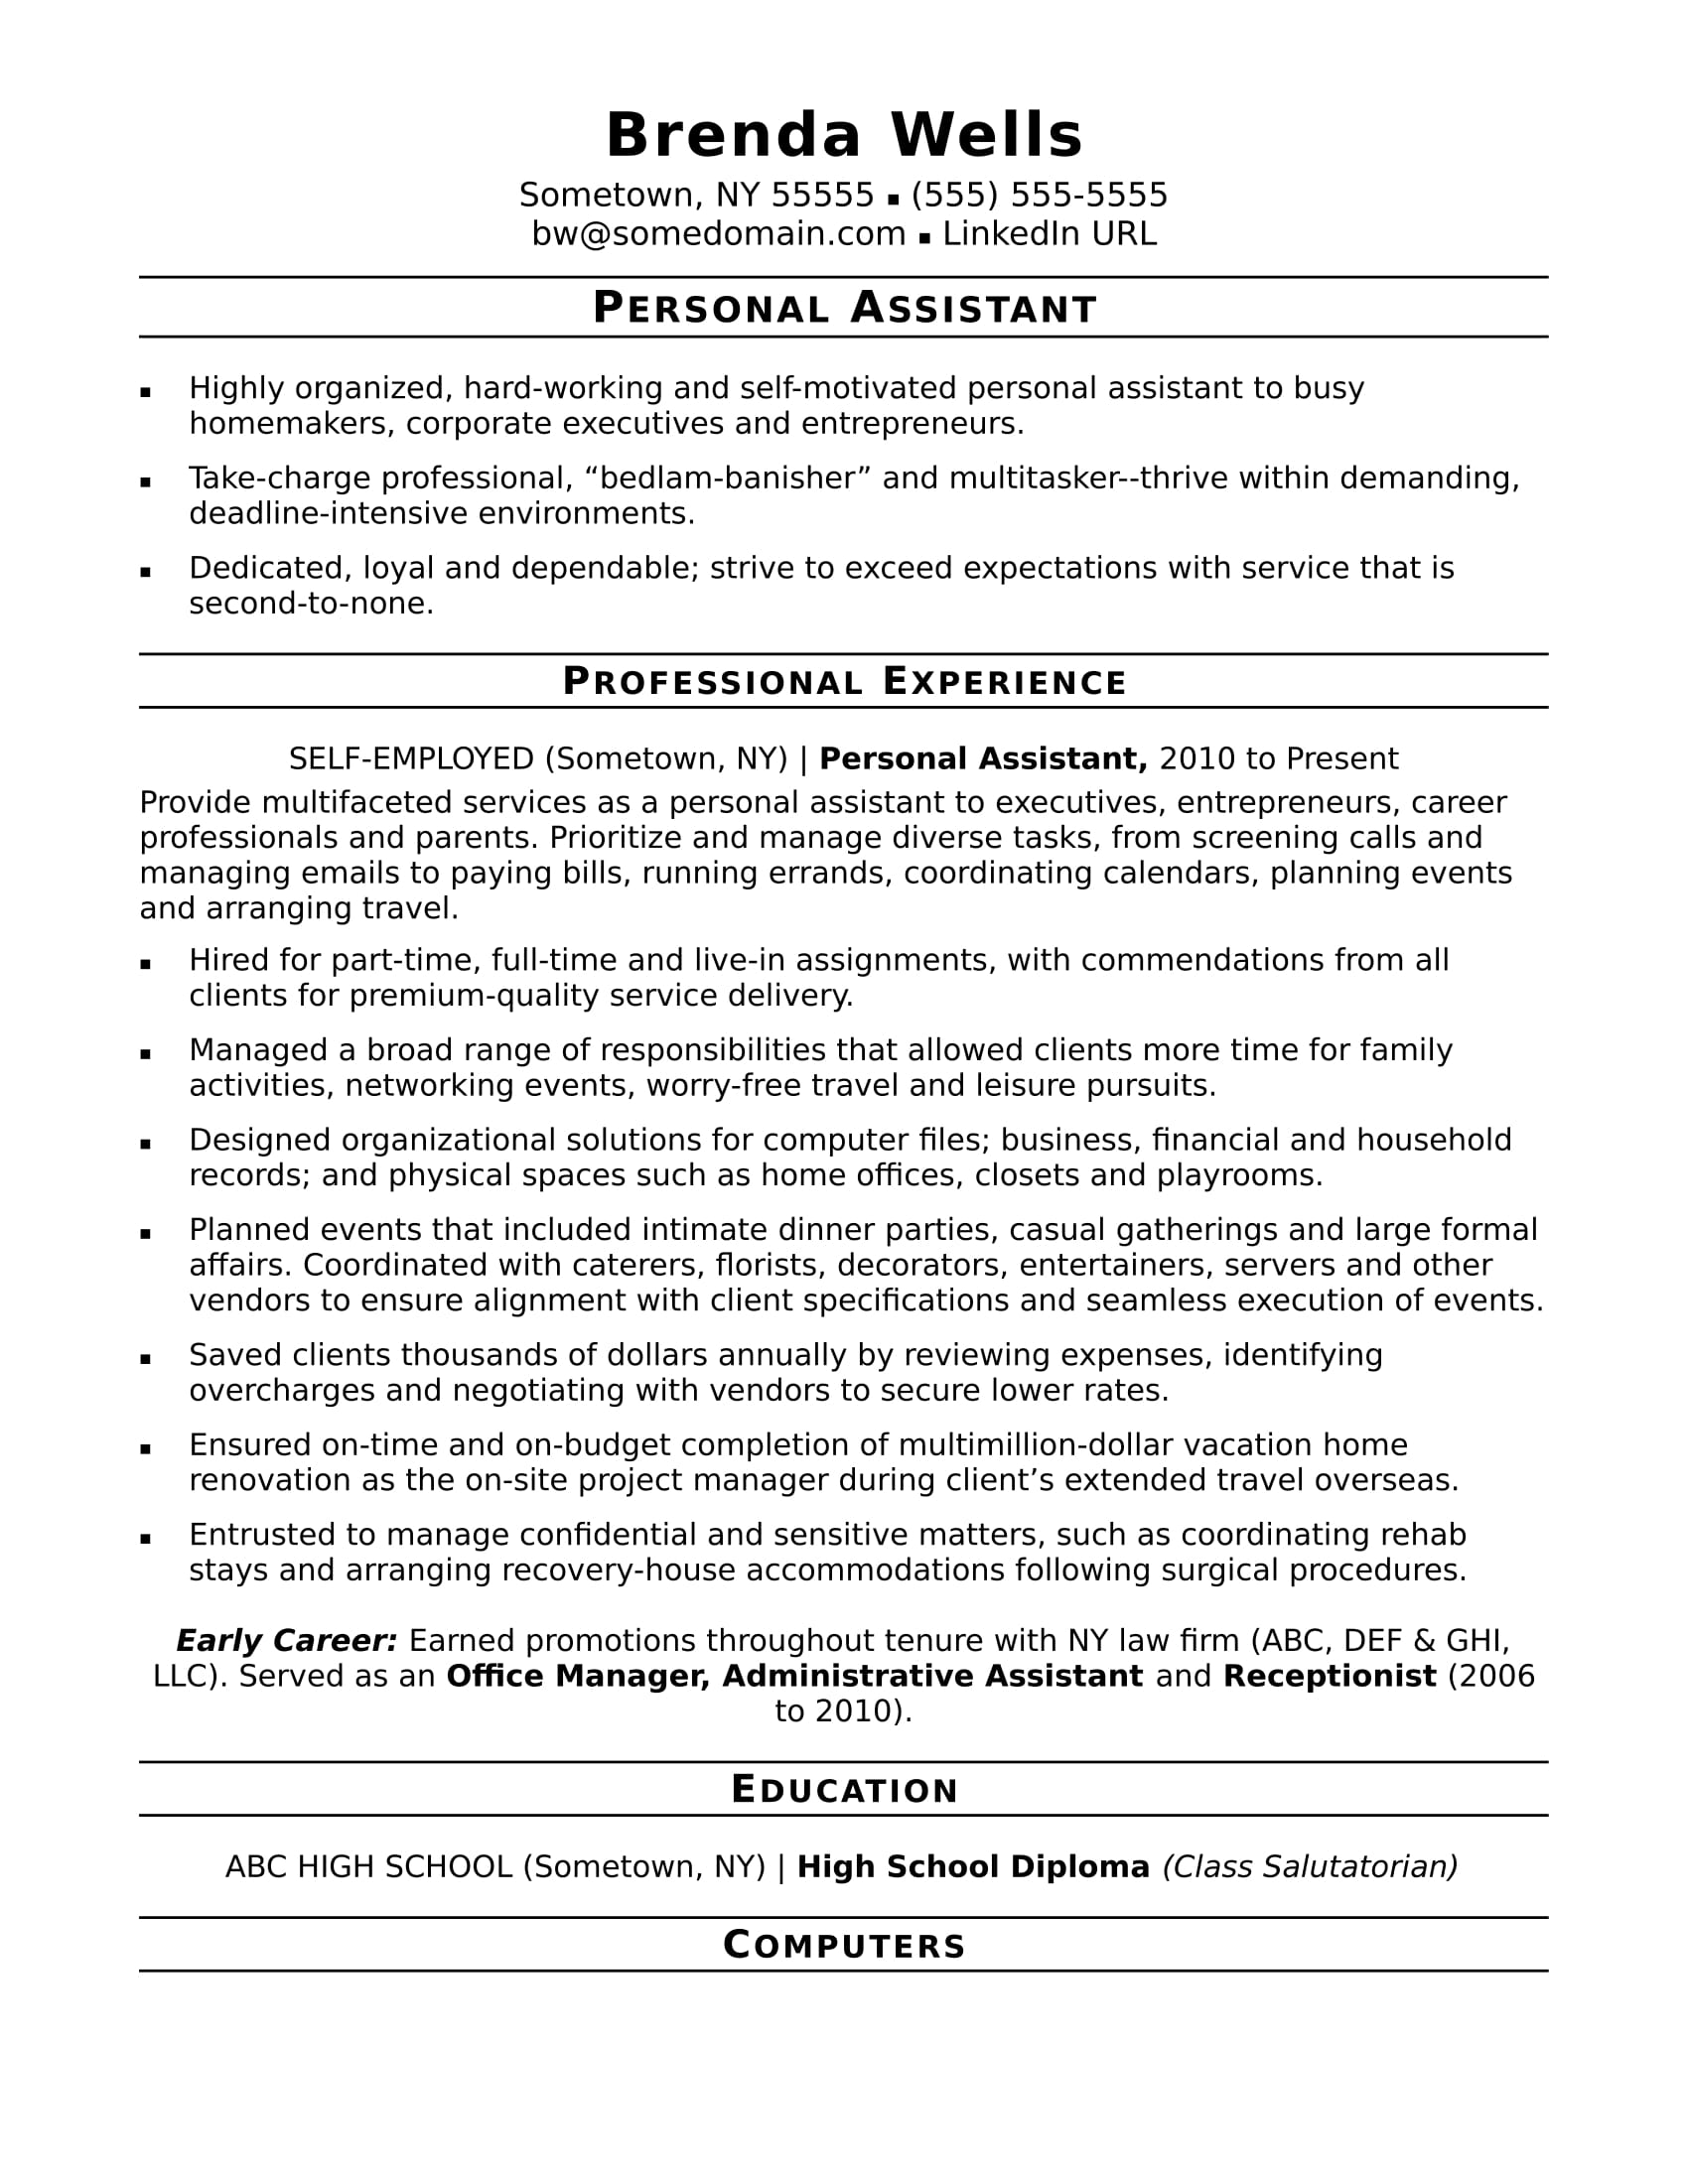 personal assistant resume sample - Sample Resume For Receptionist In Law Firm